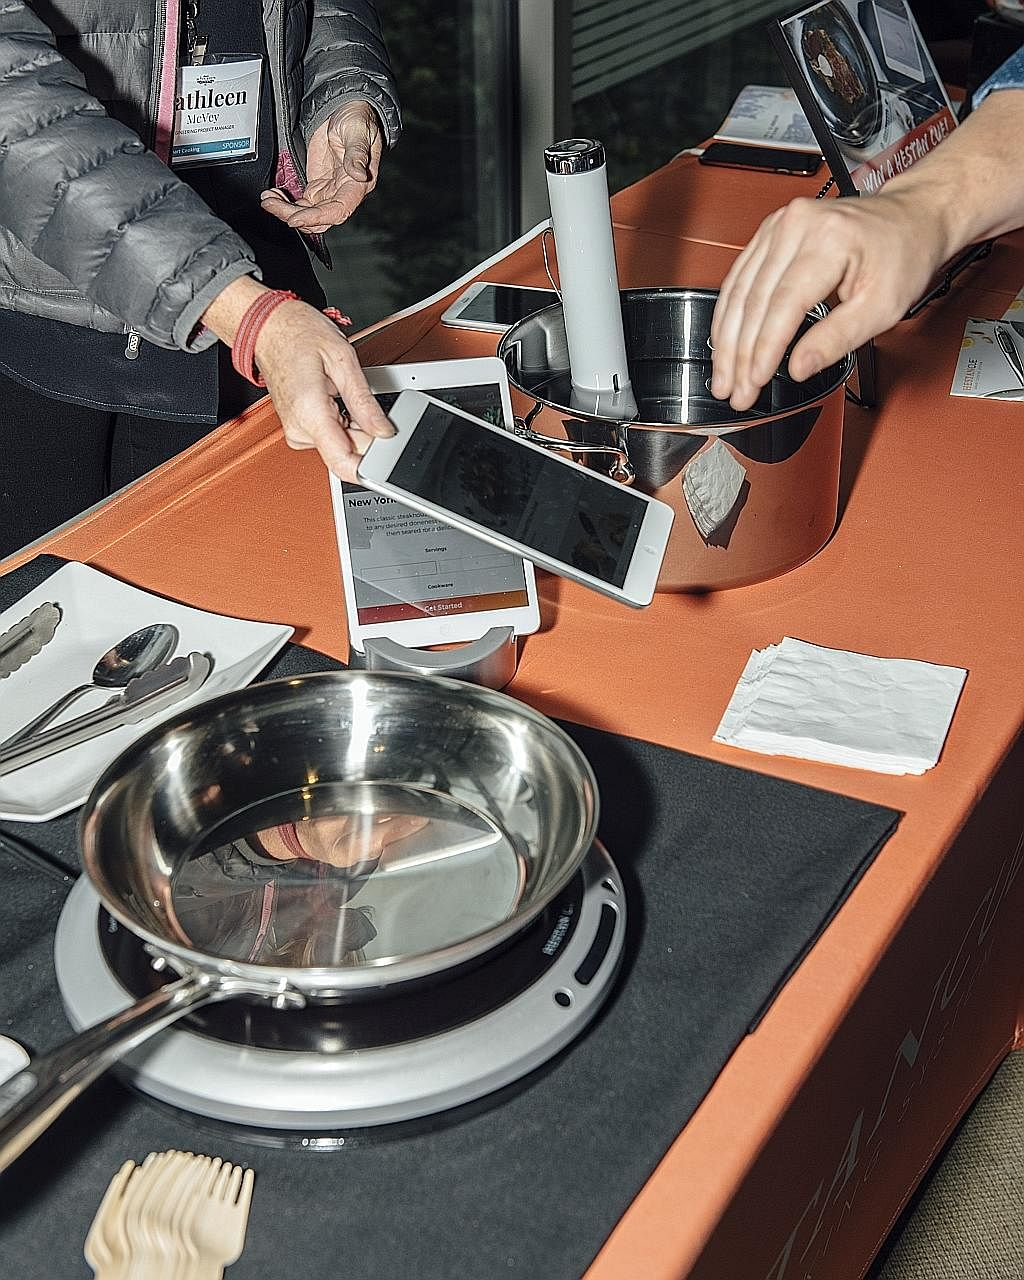 The Hestan Cue cookware system on display at the Smart Kitchen Summit in Seattle.